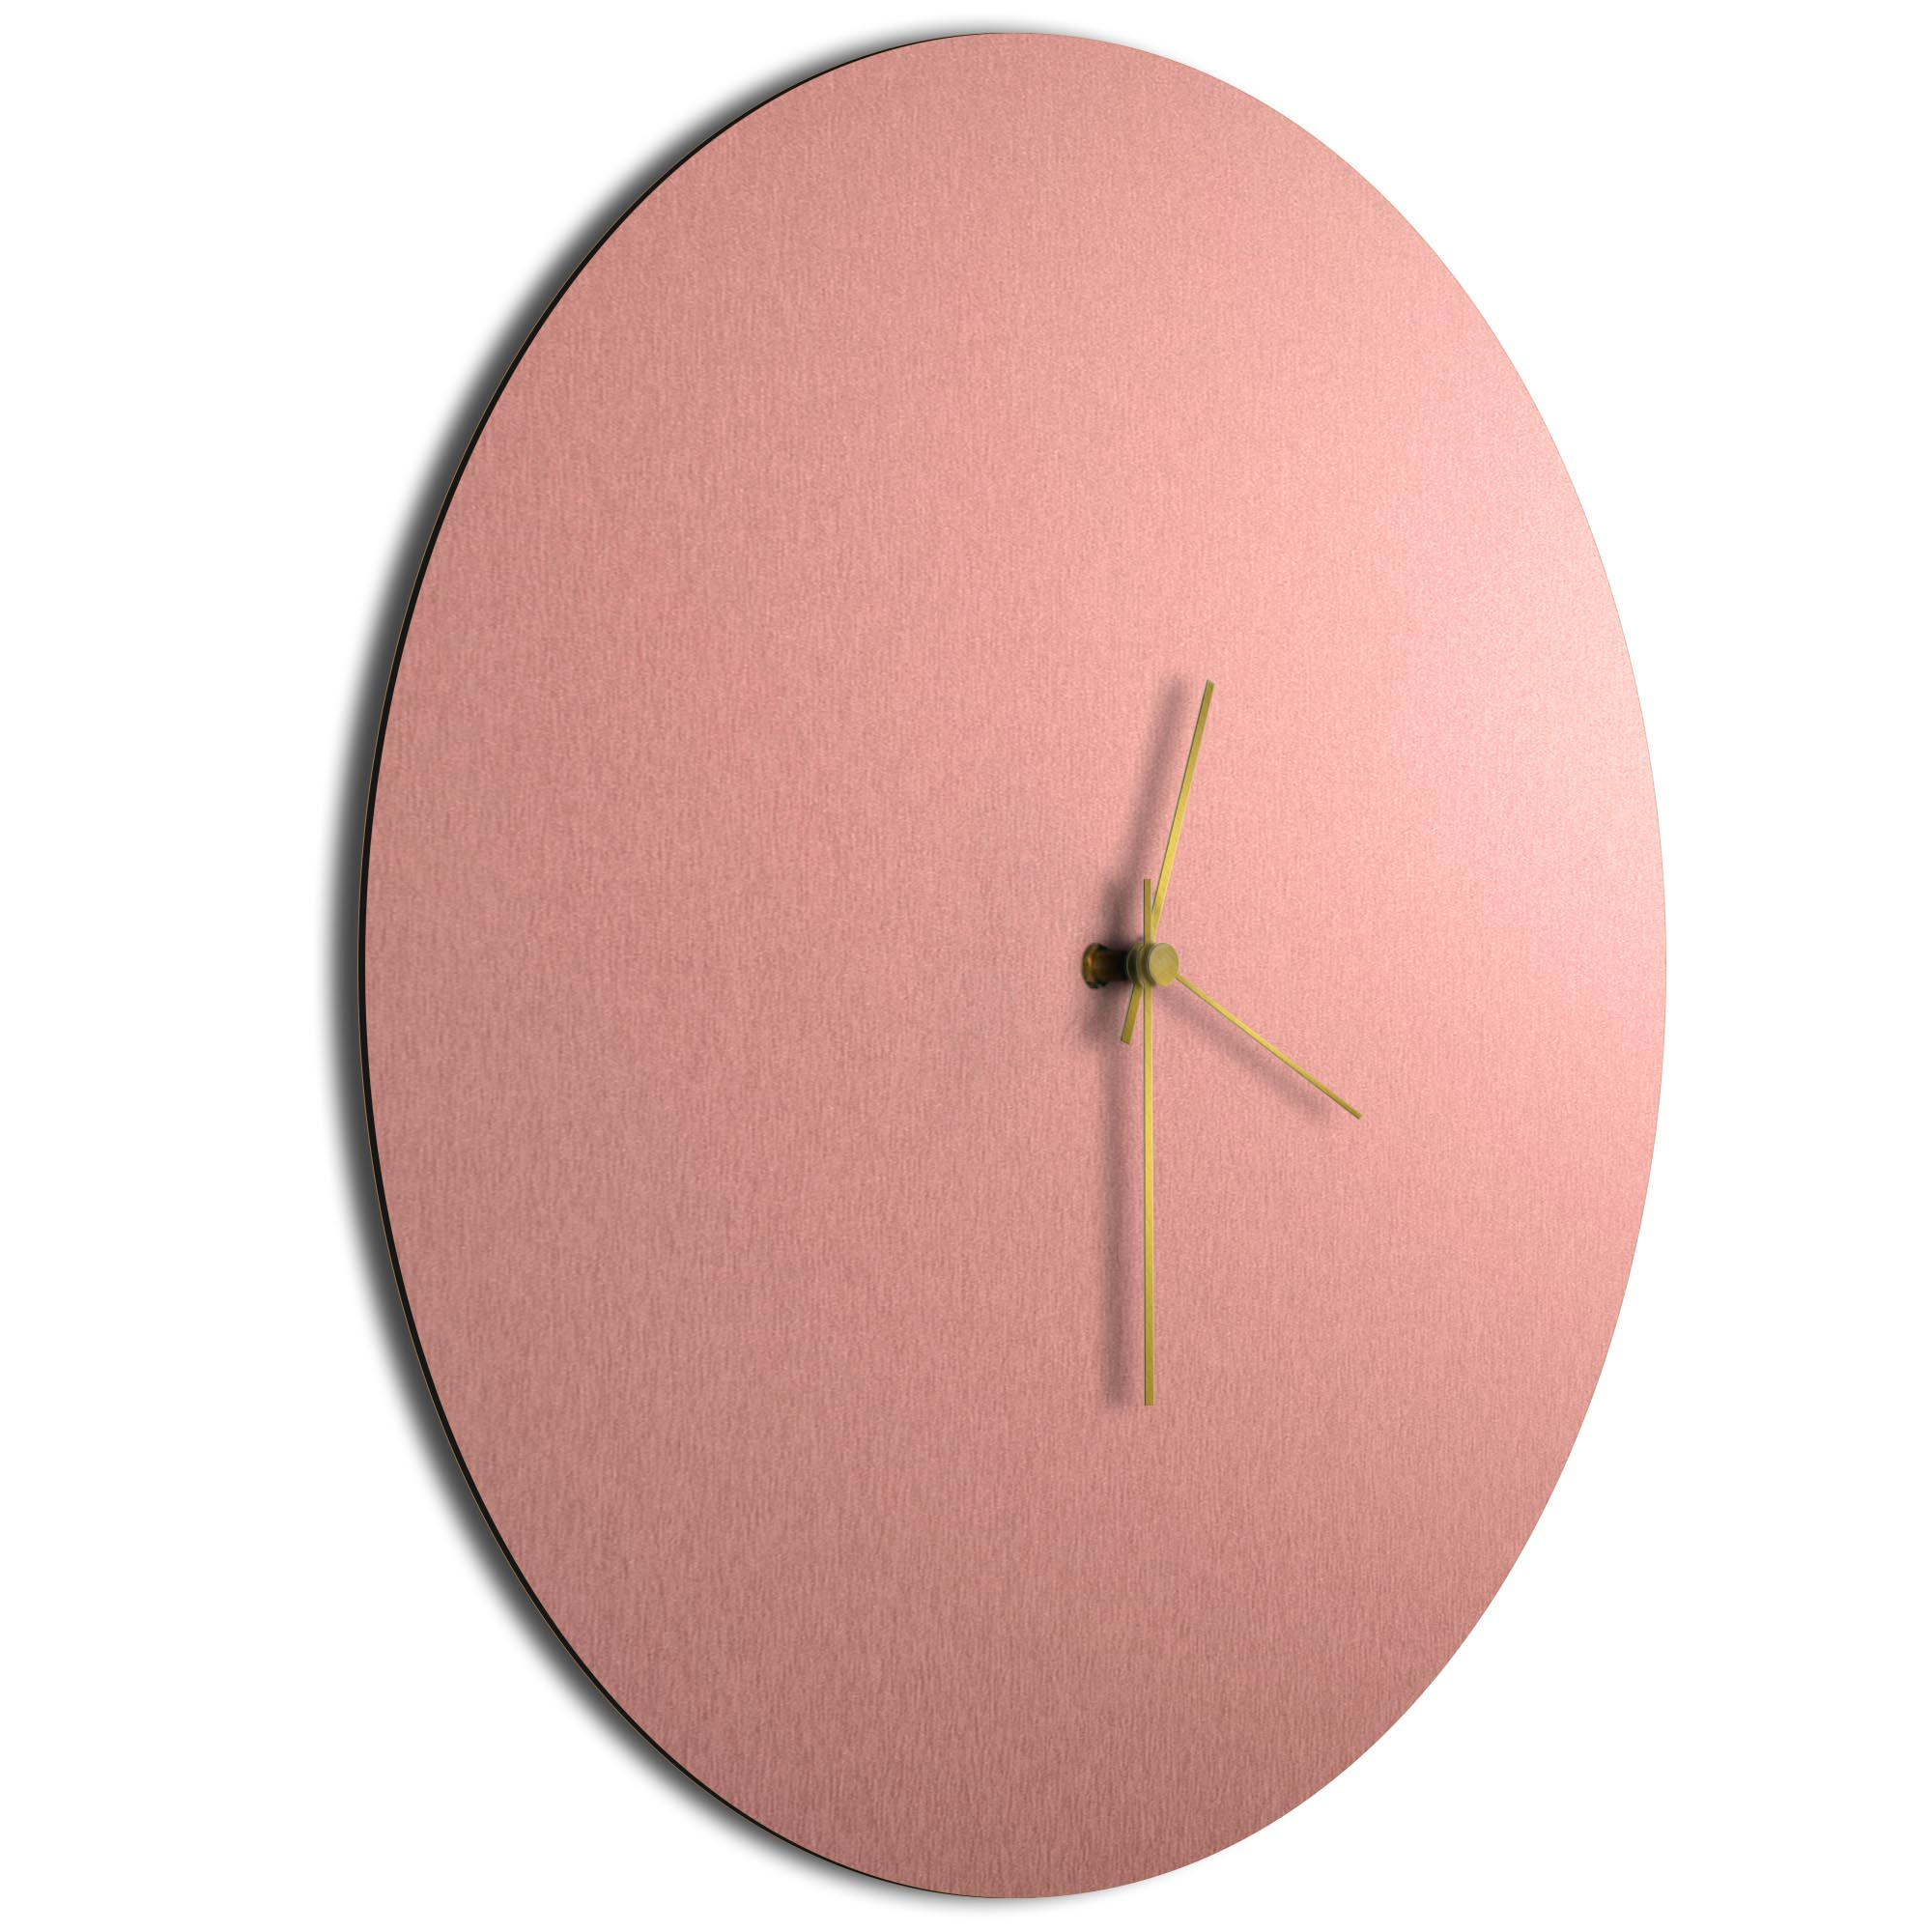 Coppersmith Circle Clock Large Gold - Image 2